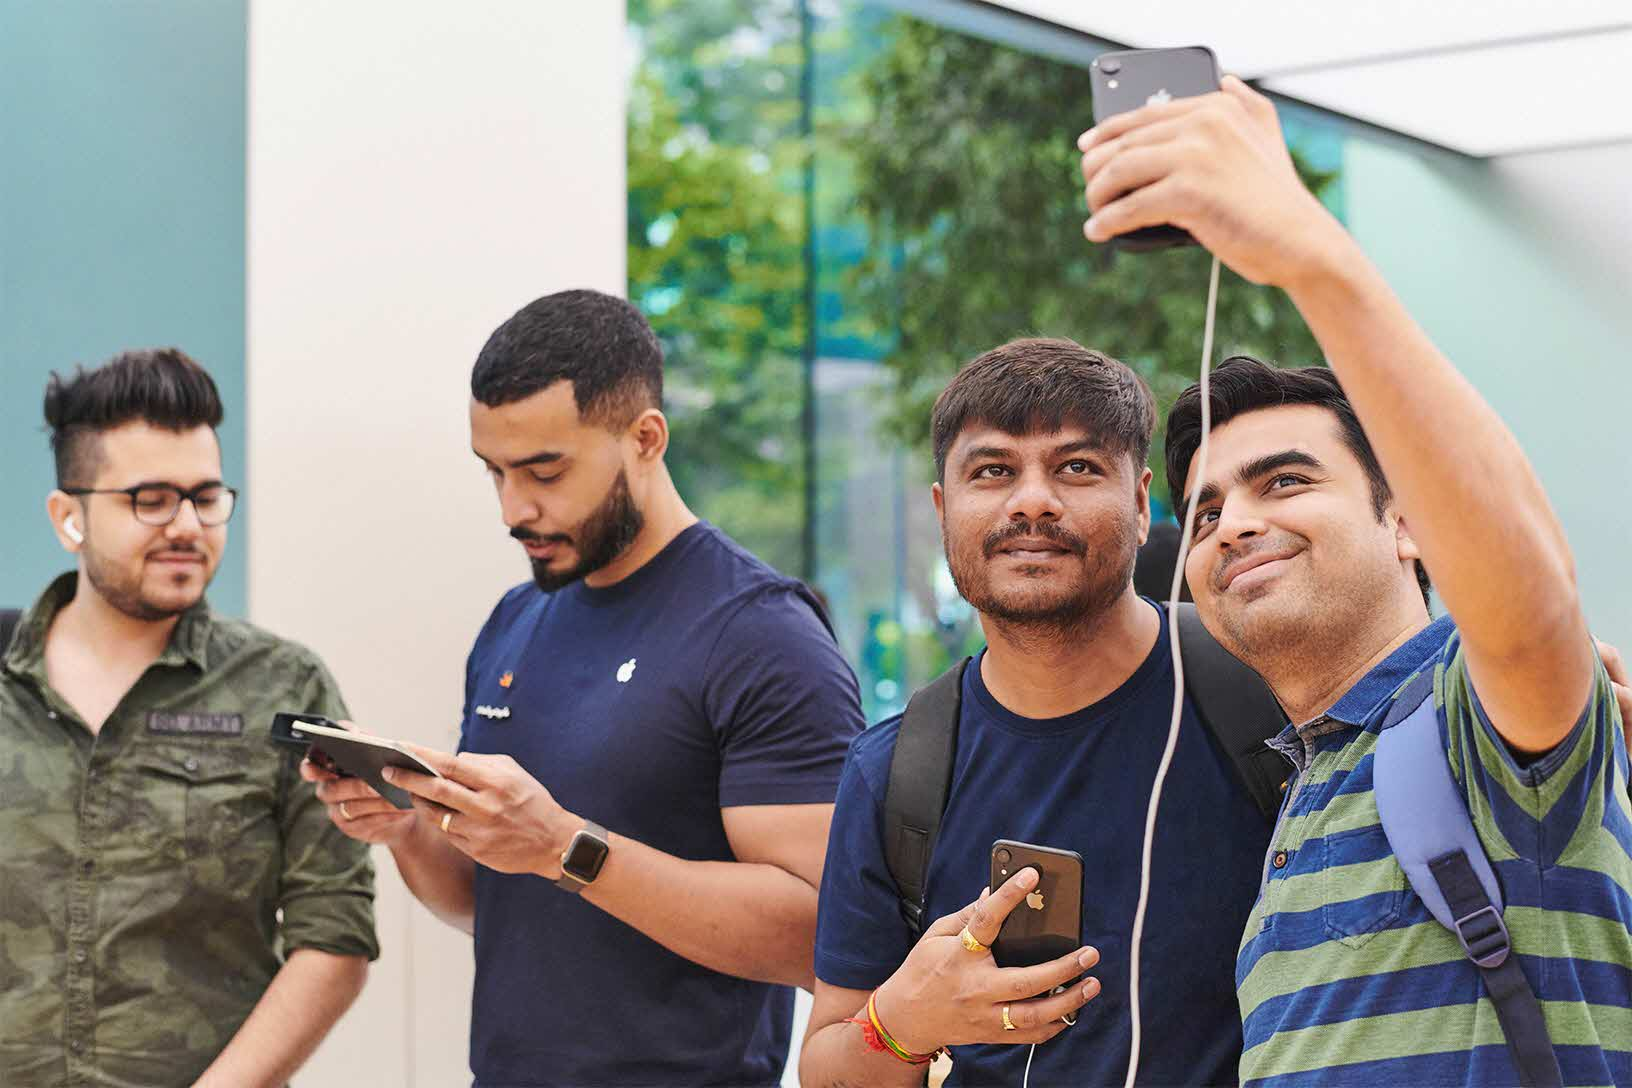 Iphonexr Launch Orchardrd Singapore Instore Selfie 10262018